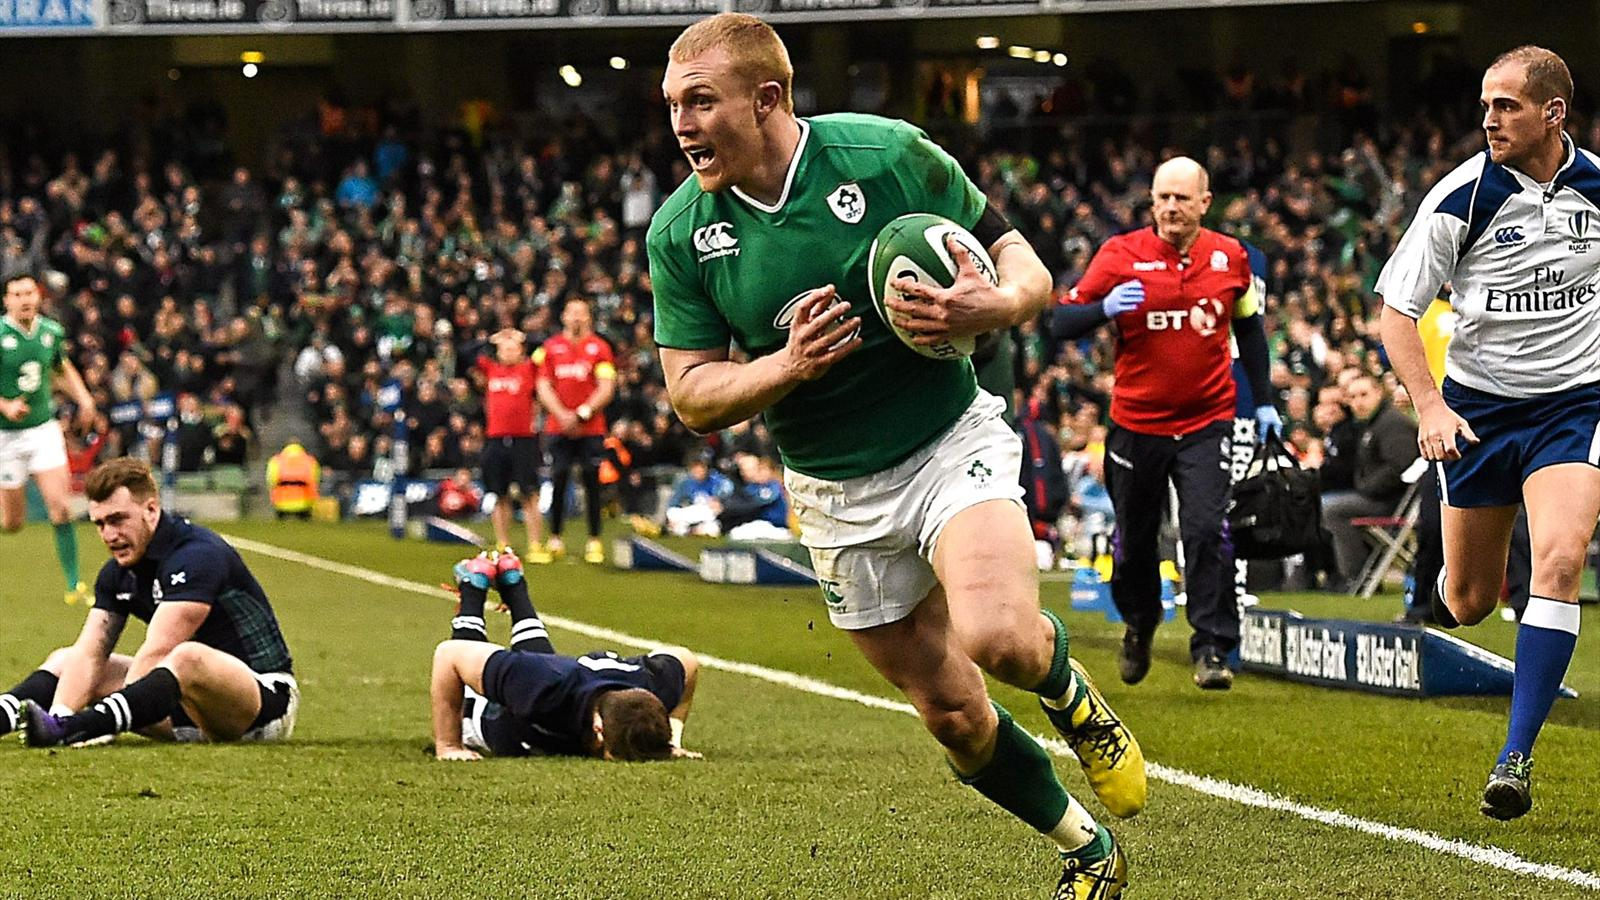 Keith Earls (Irlande) face à l'Ecosse - 19 mars 2016